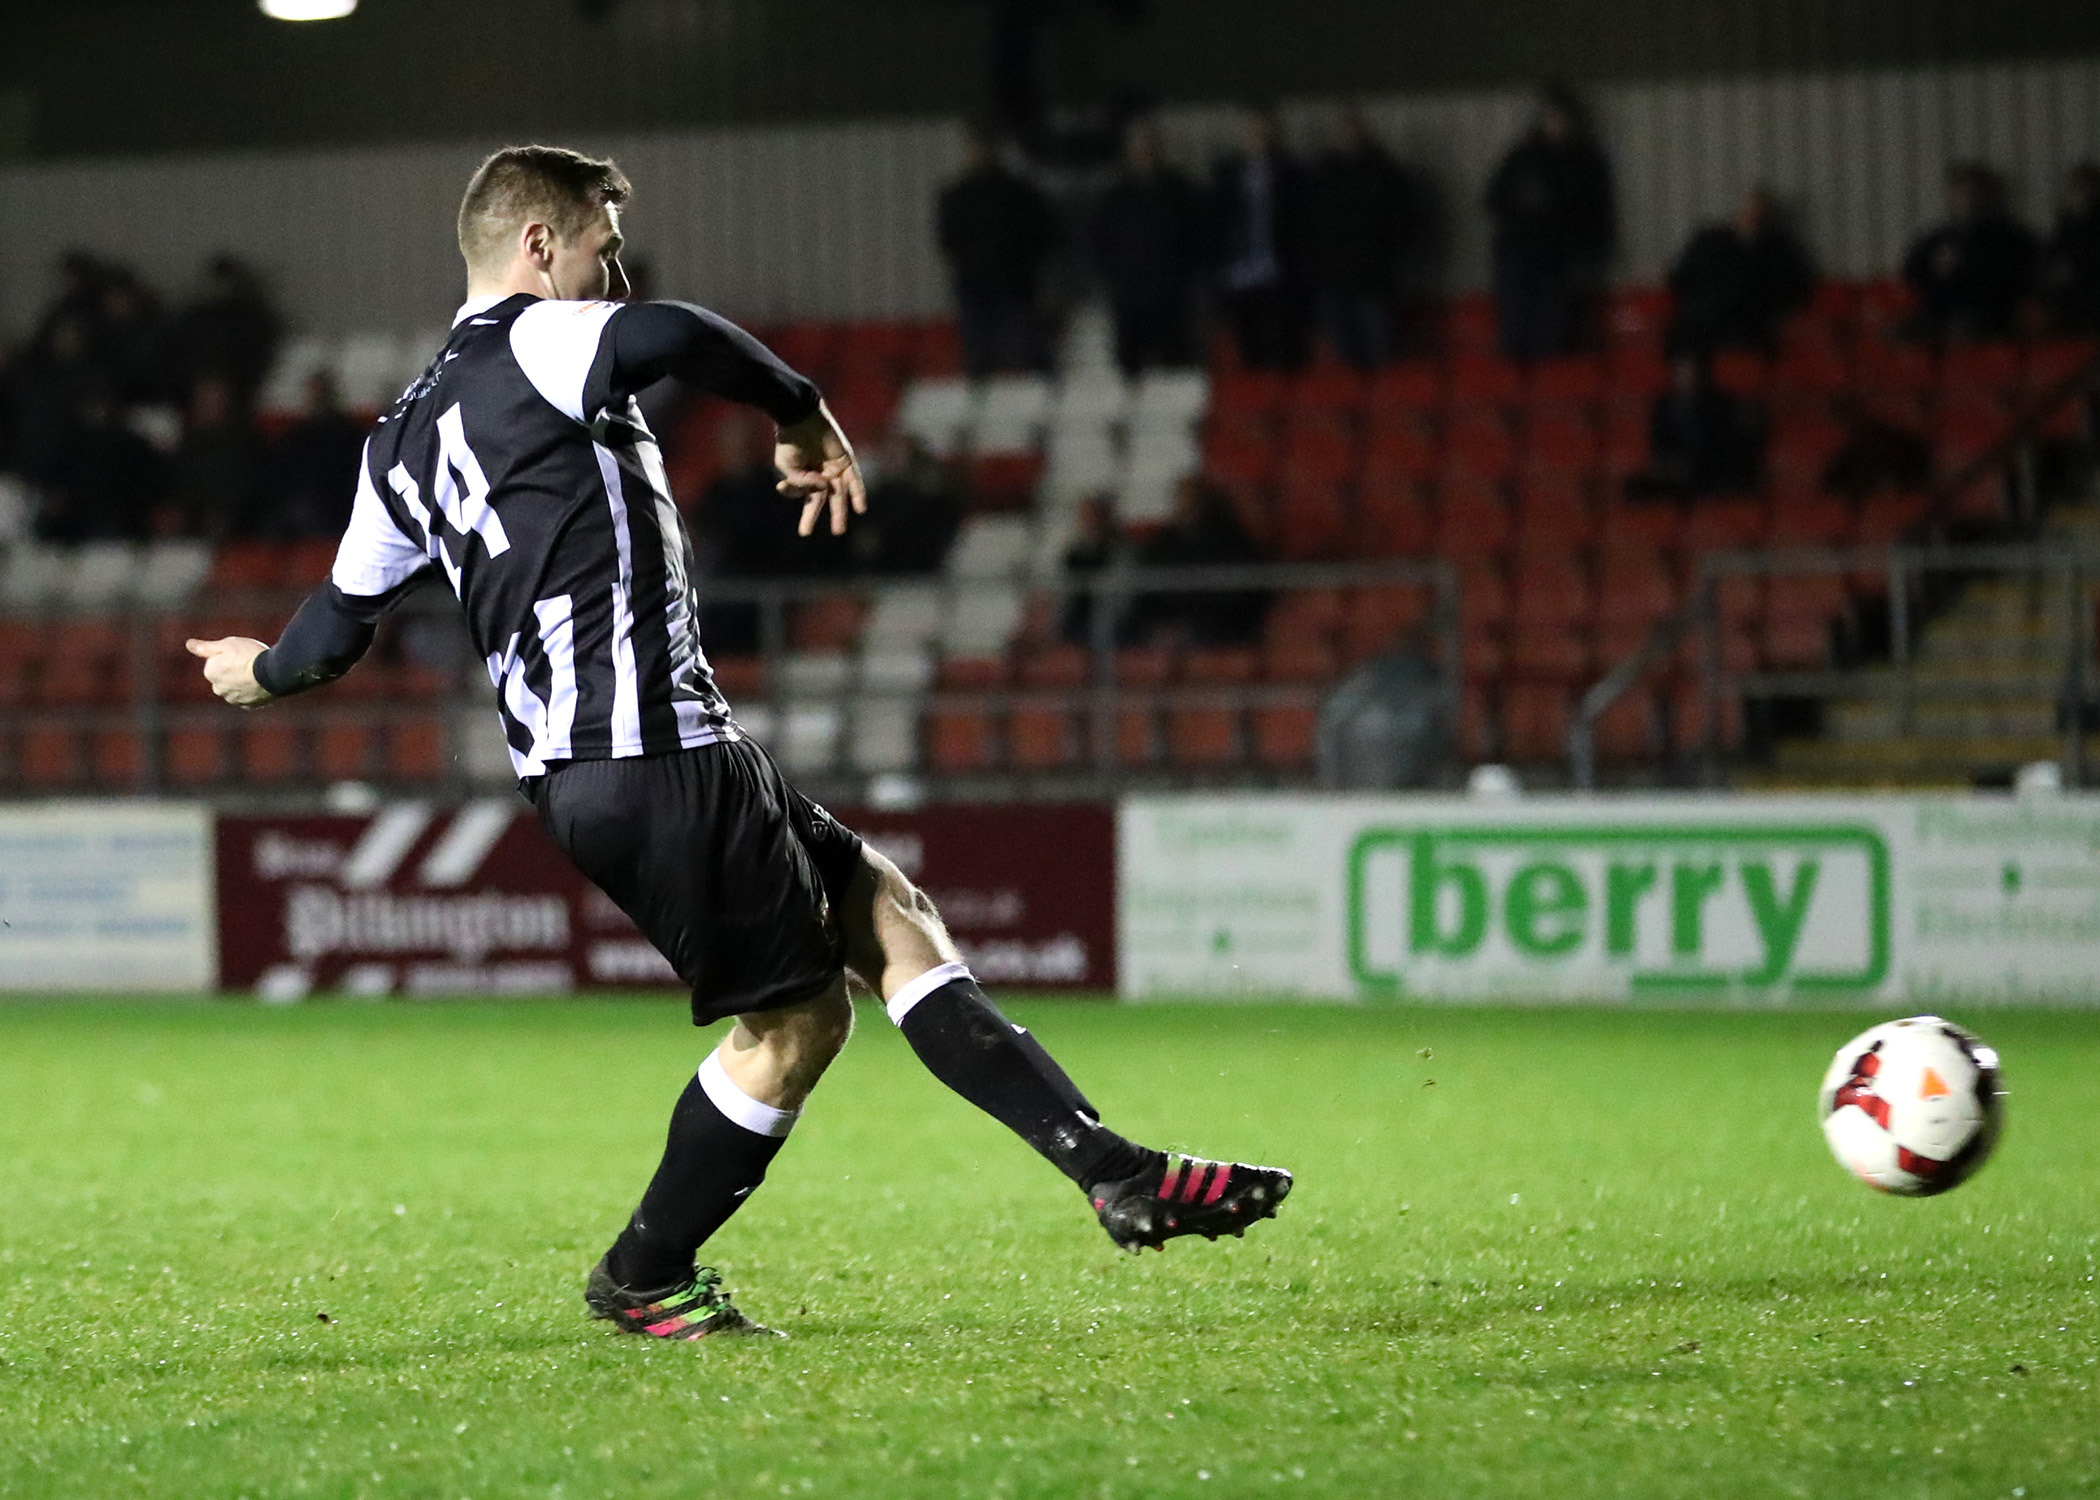 Jake Cottrell misses the decisive penalty during Chorley's semi-final shootout loss